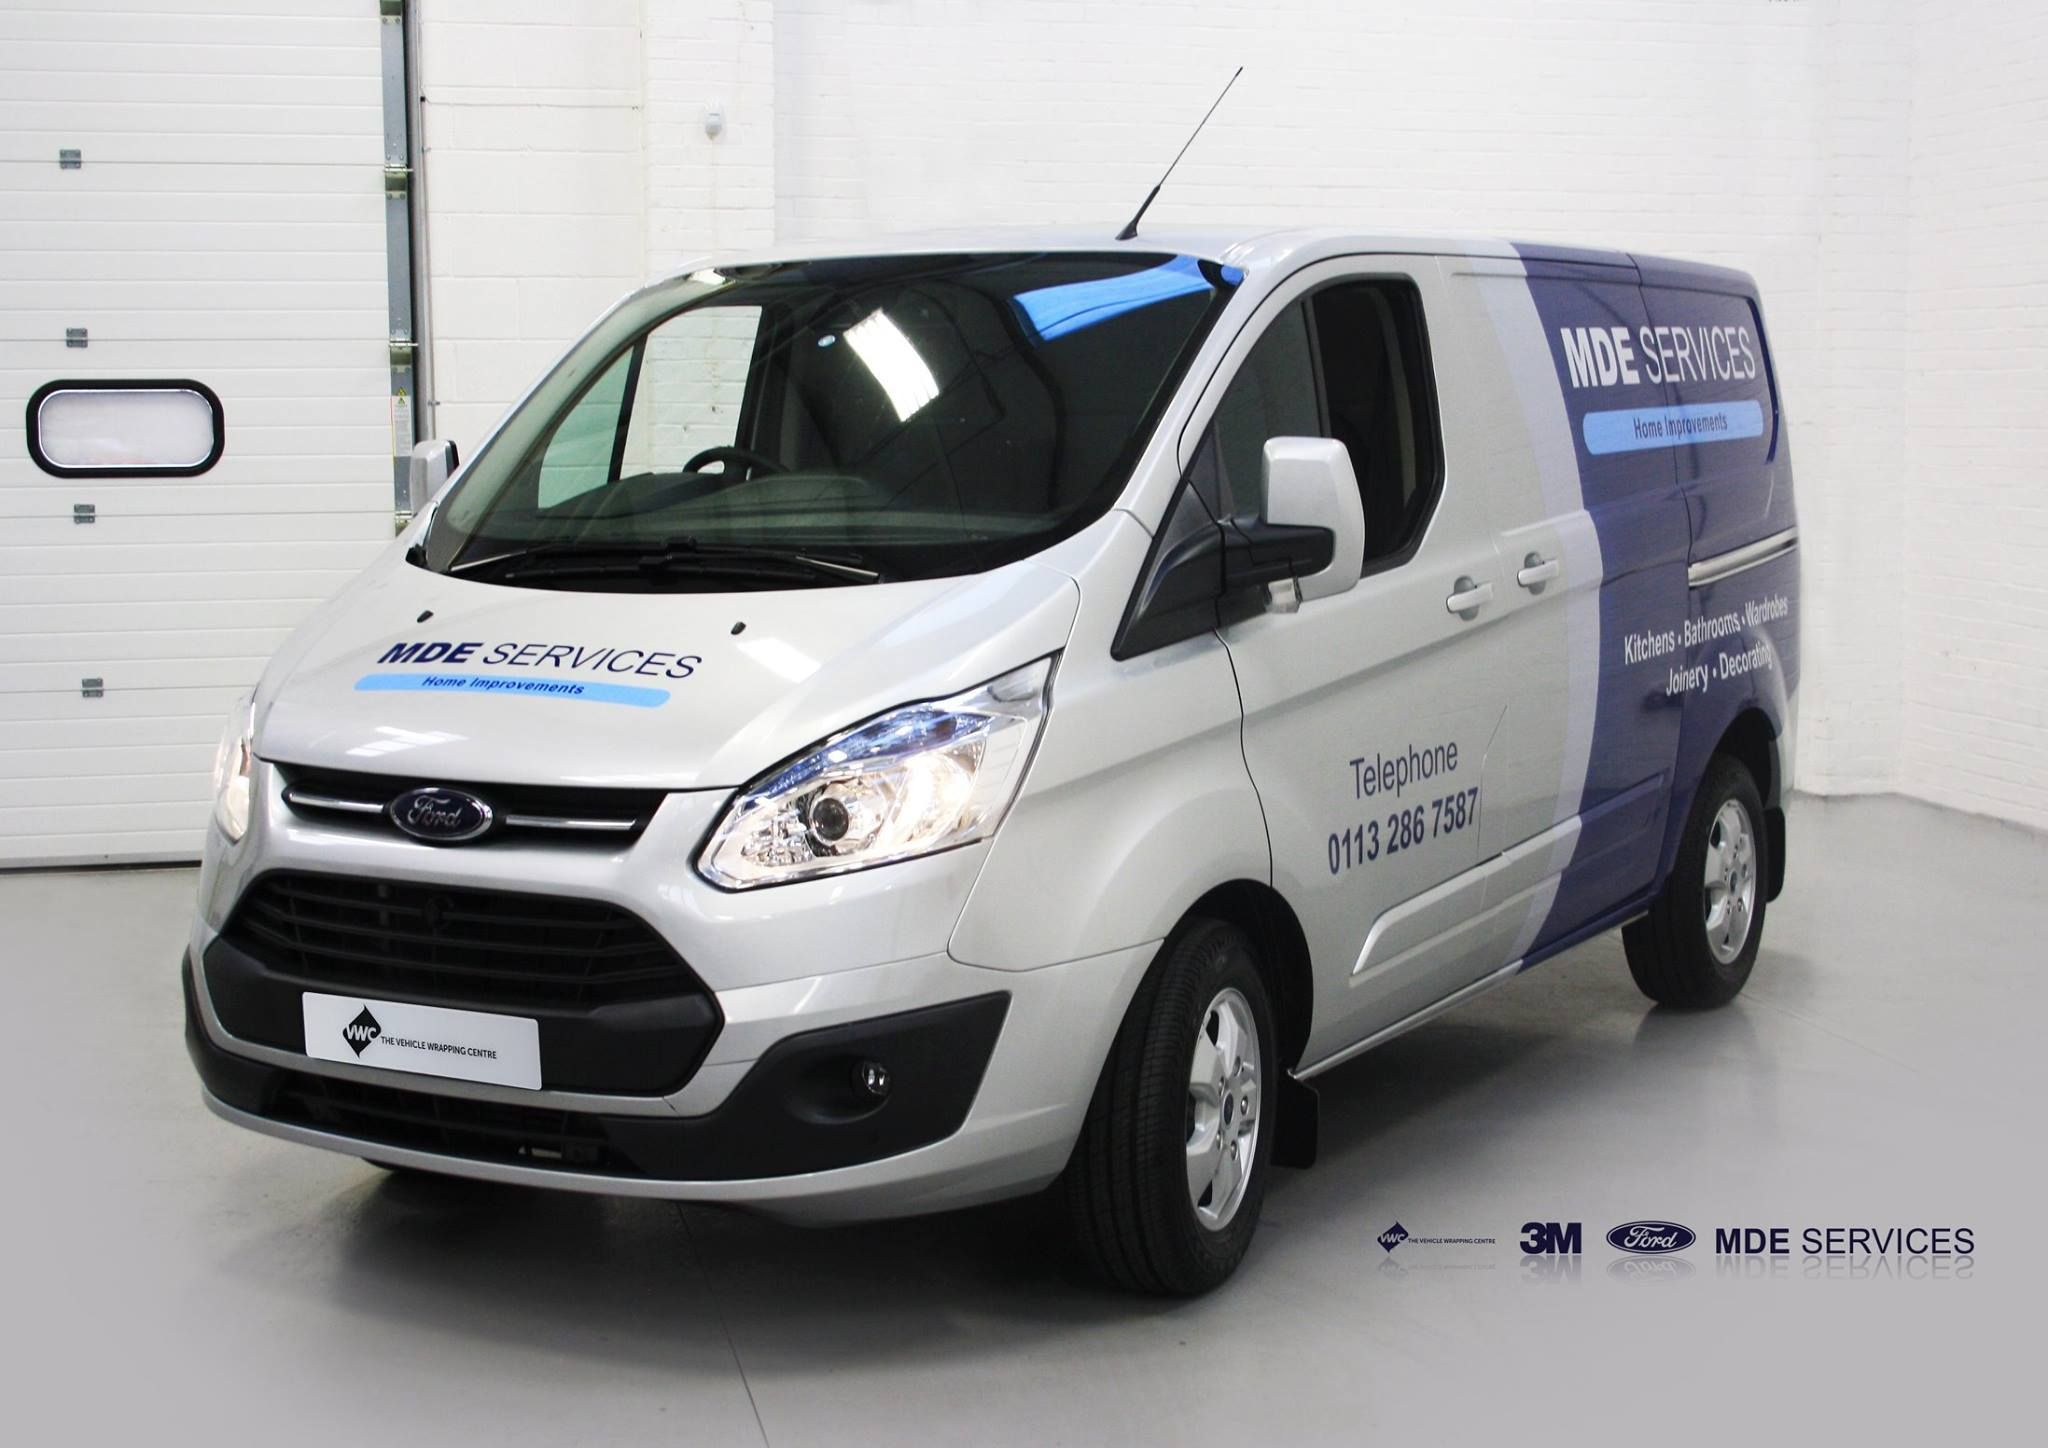 2dc36b86d7 MDE Services had this new Ford Transit Custom partly wrapped with added cut  graphics here with